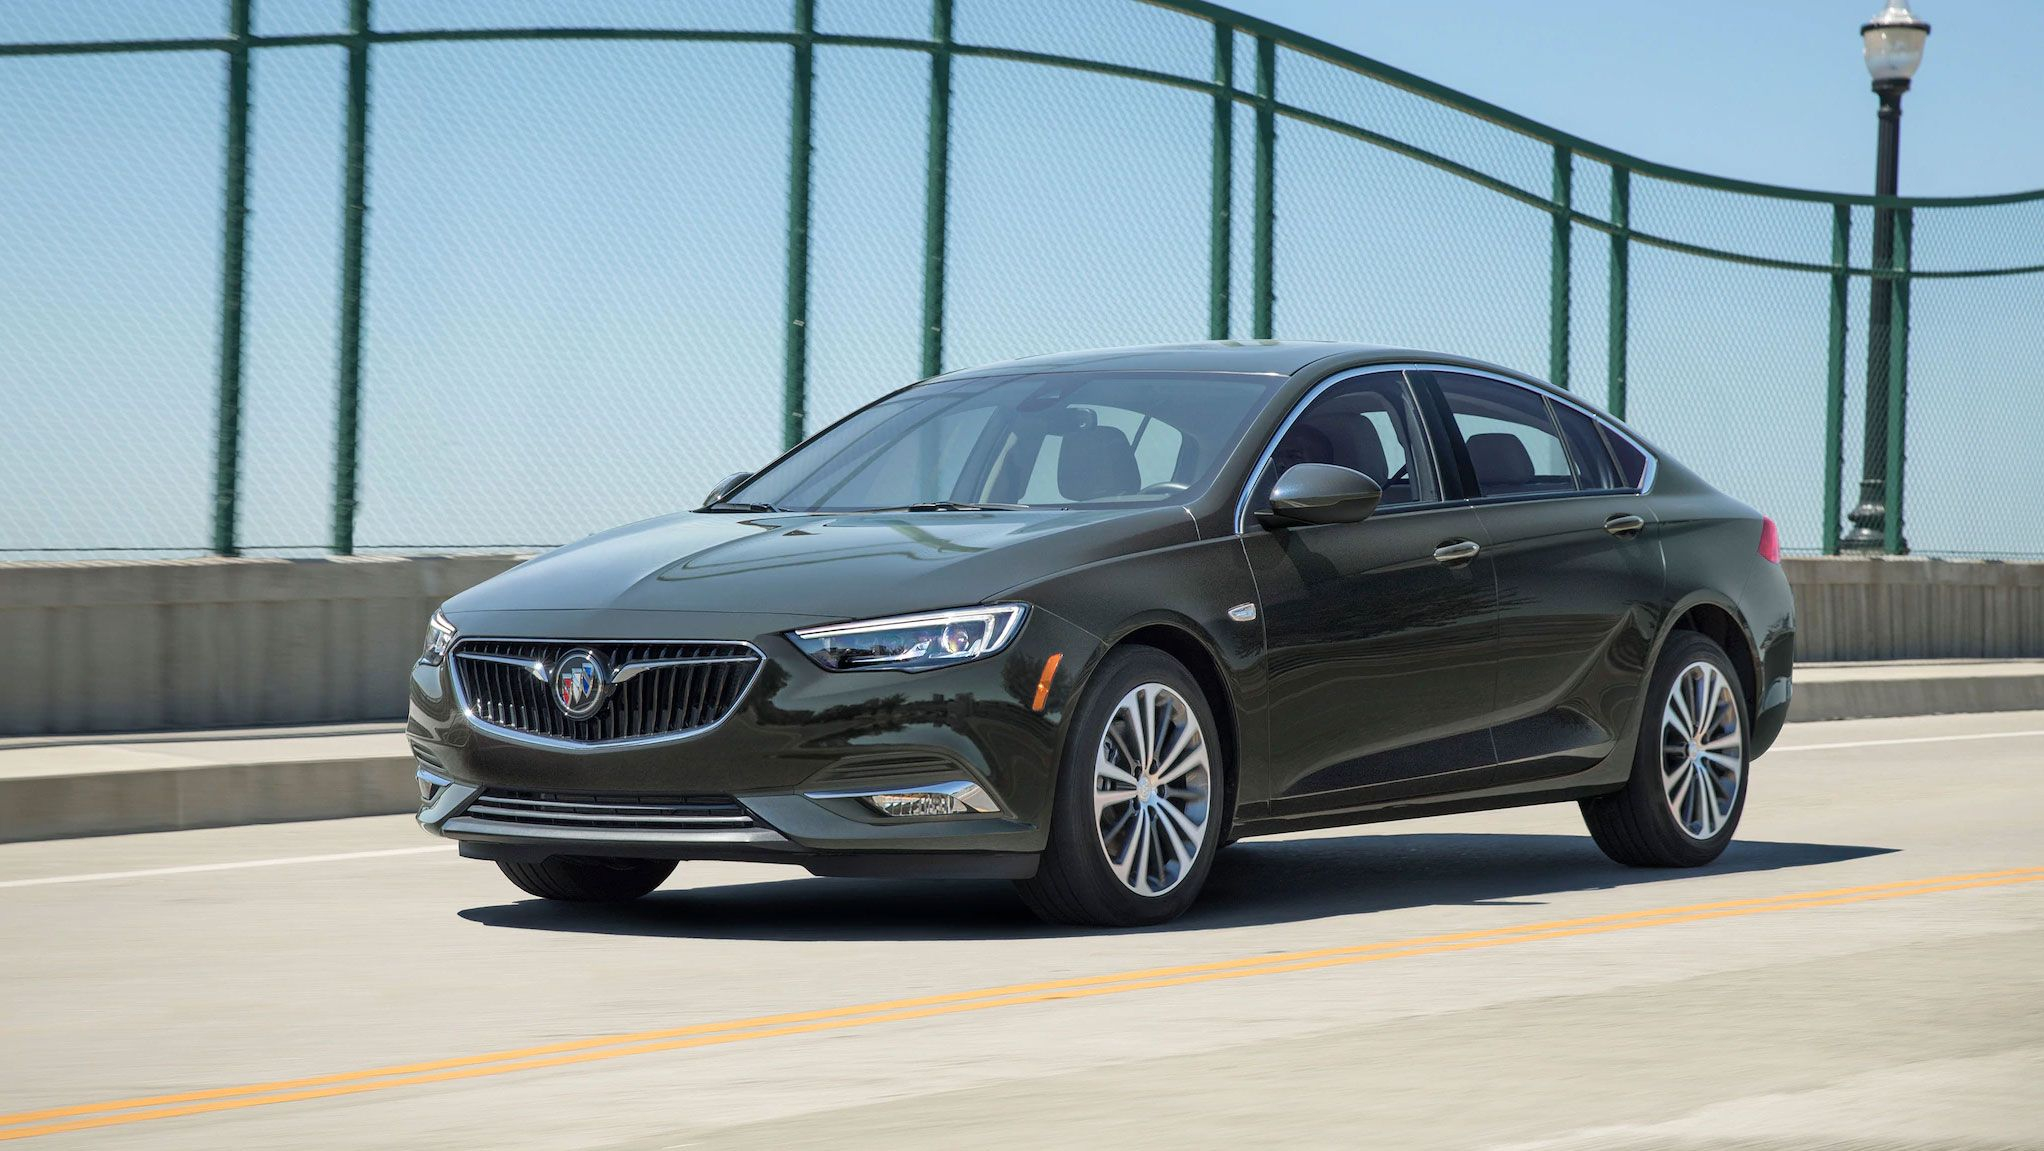 2020 Buick Regal Sportback Review, Pricing, And Specs 2021 Buick Regal Sportback Engine, Preferred, Pics